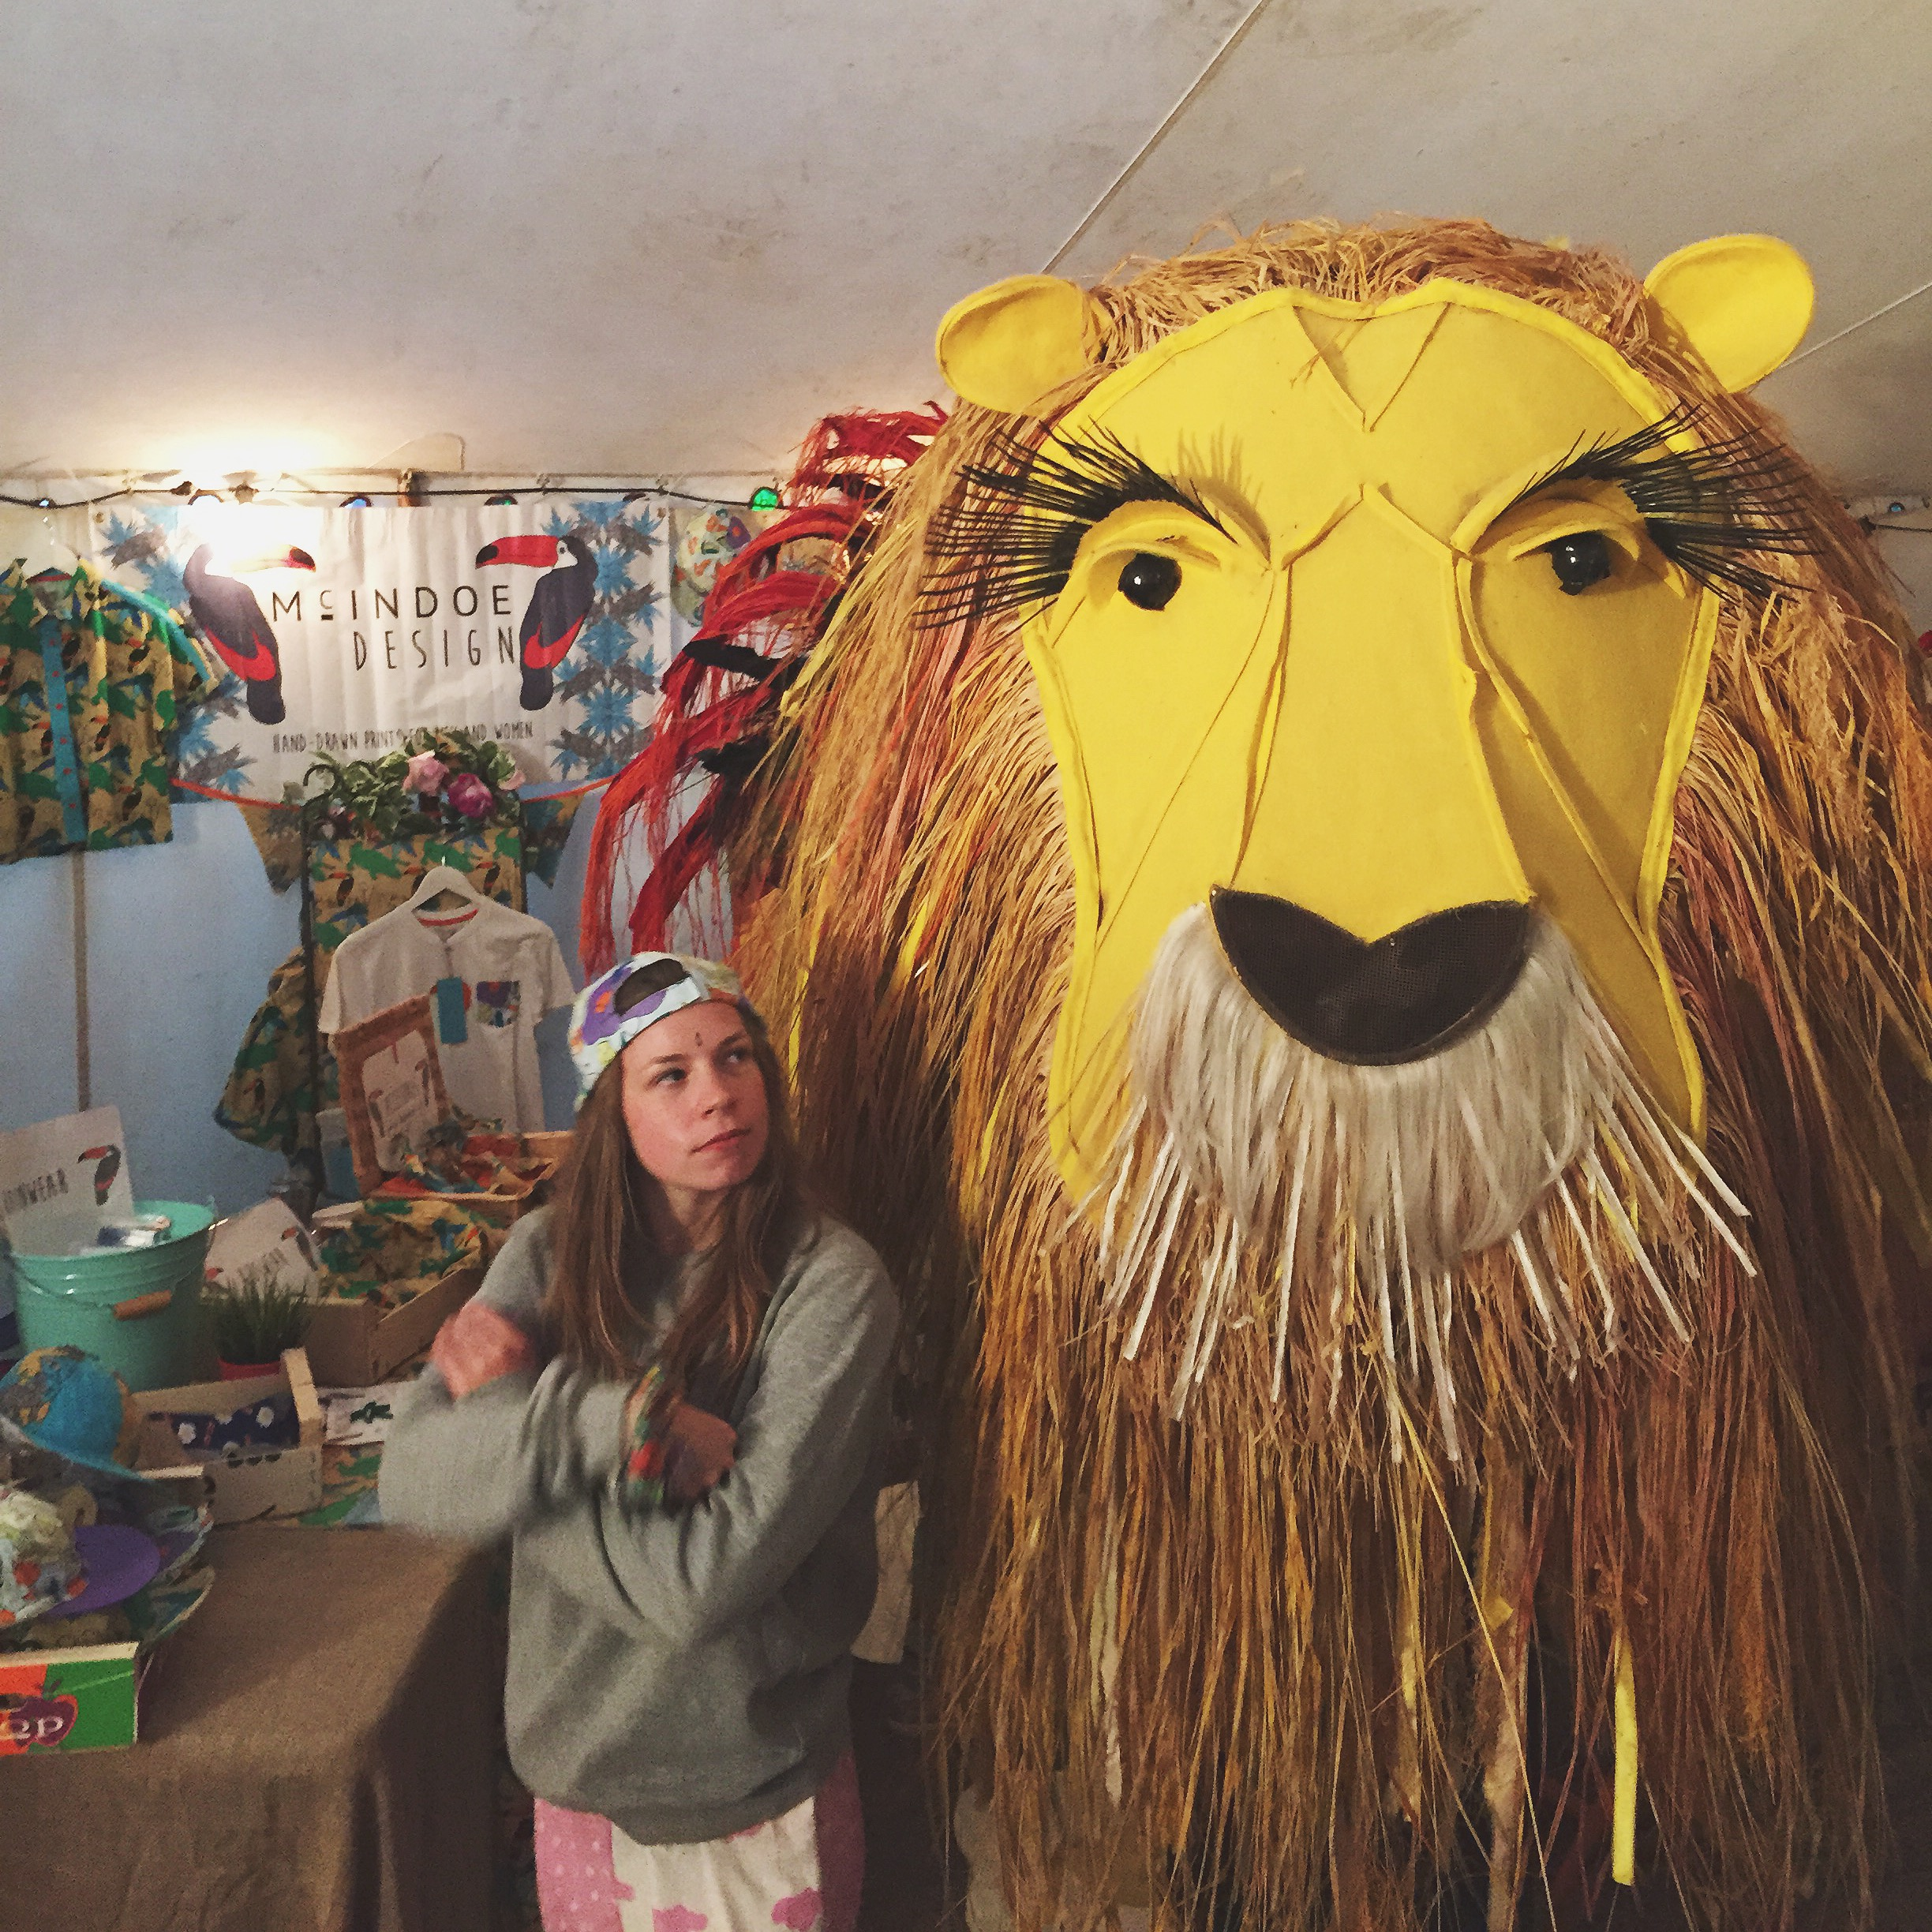 A lion we found at the festival looking for an equally large rooster